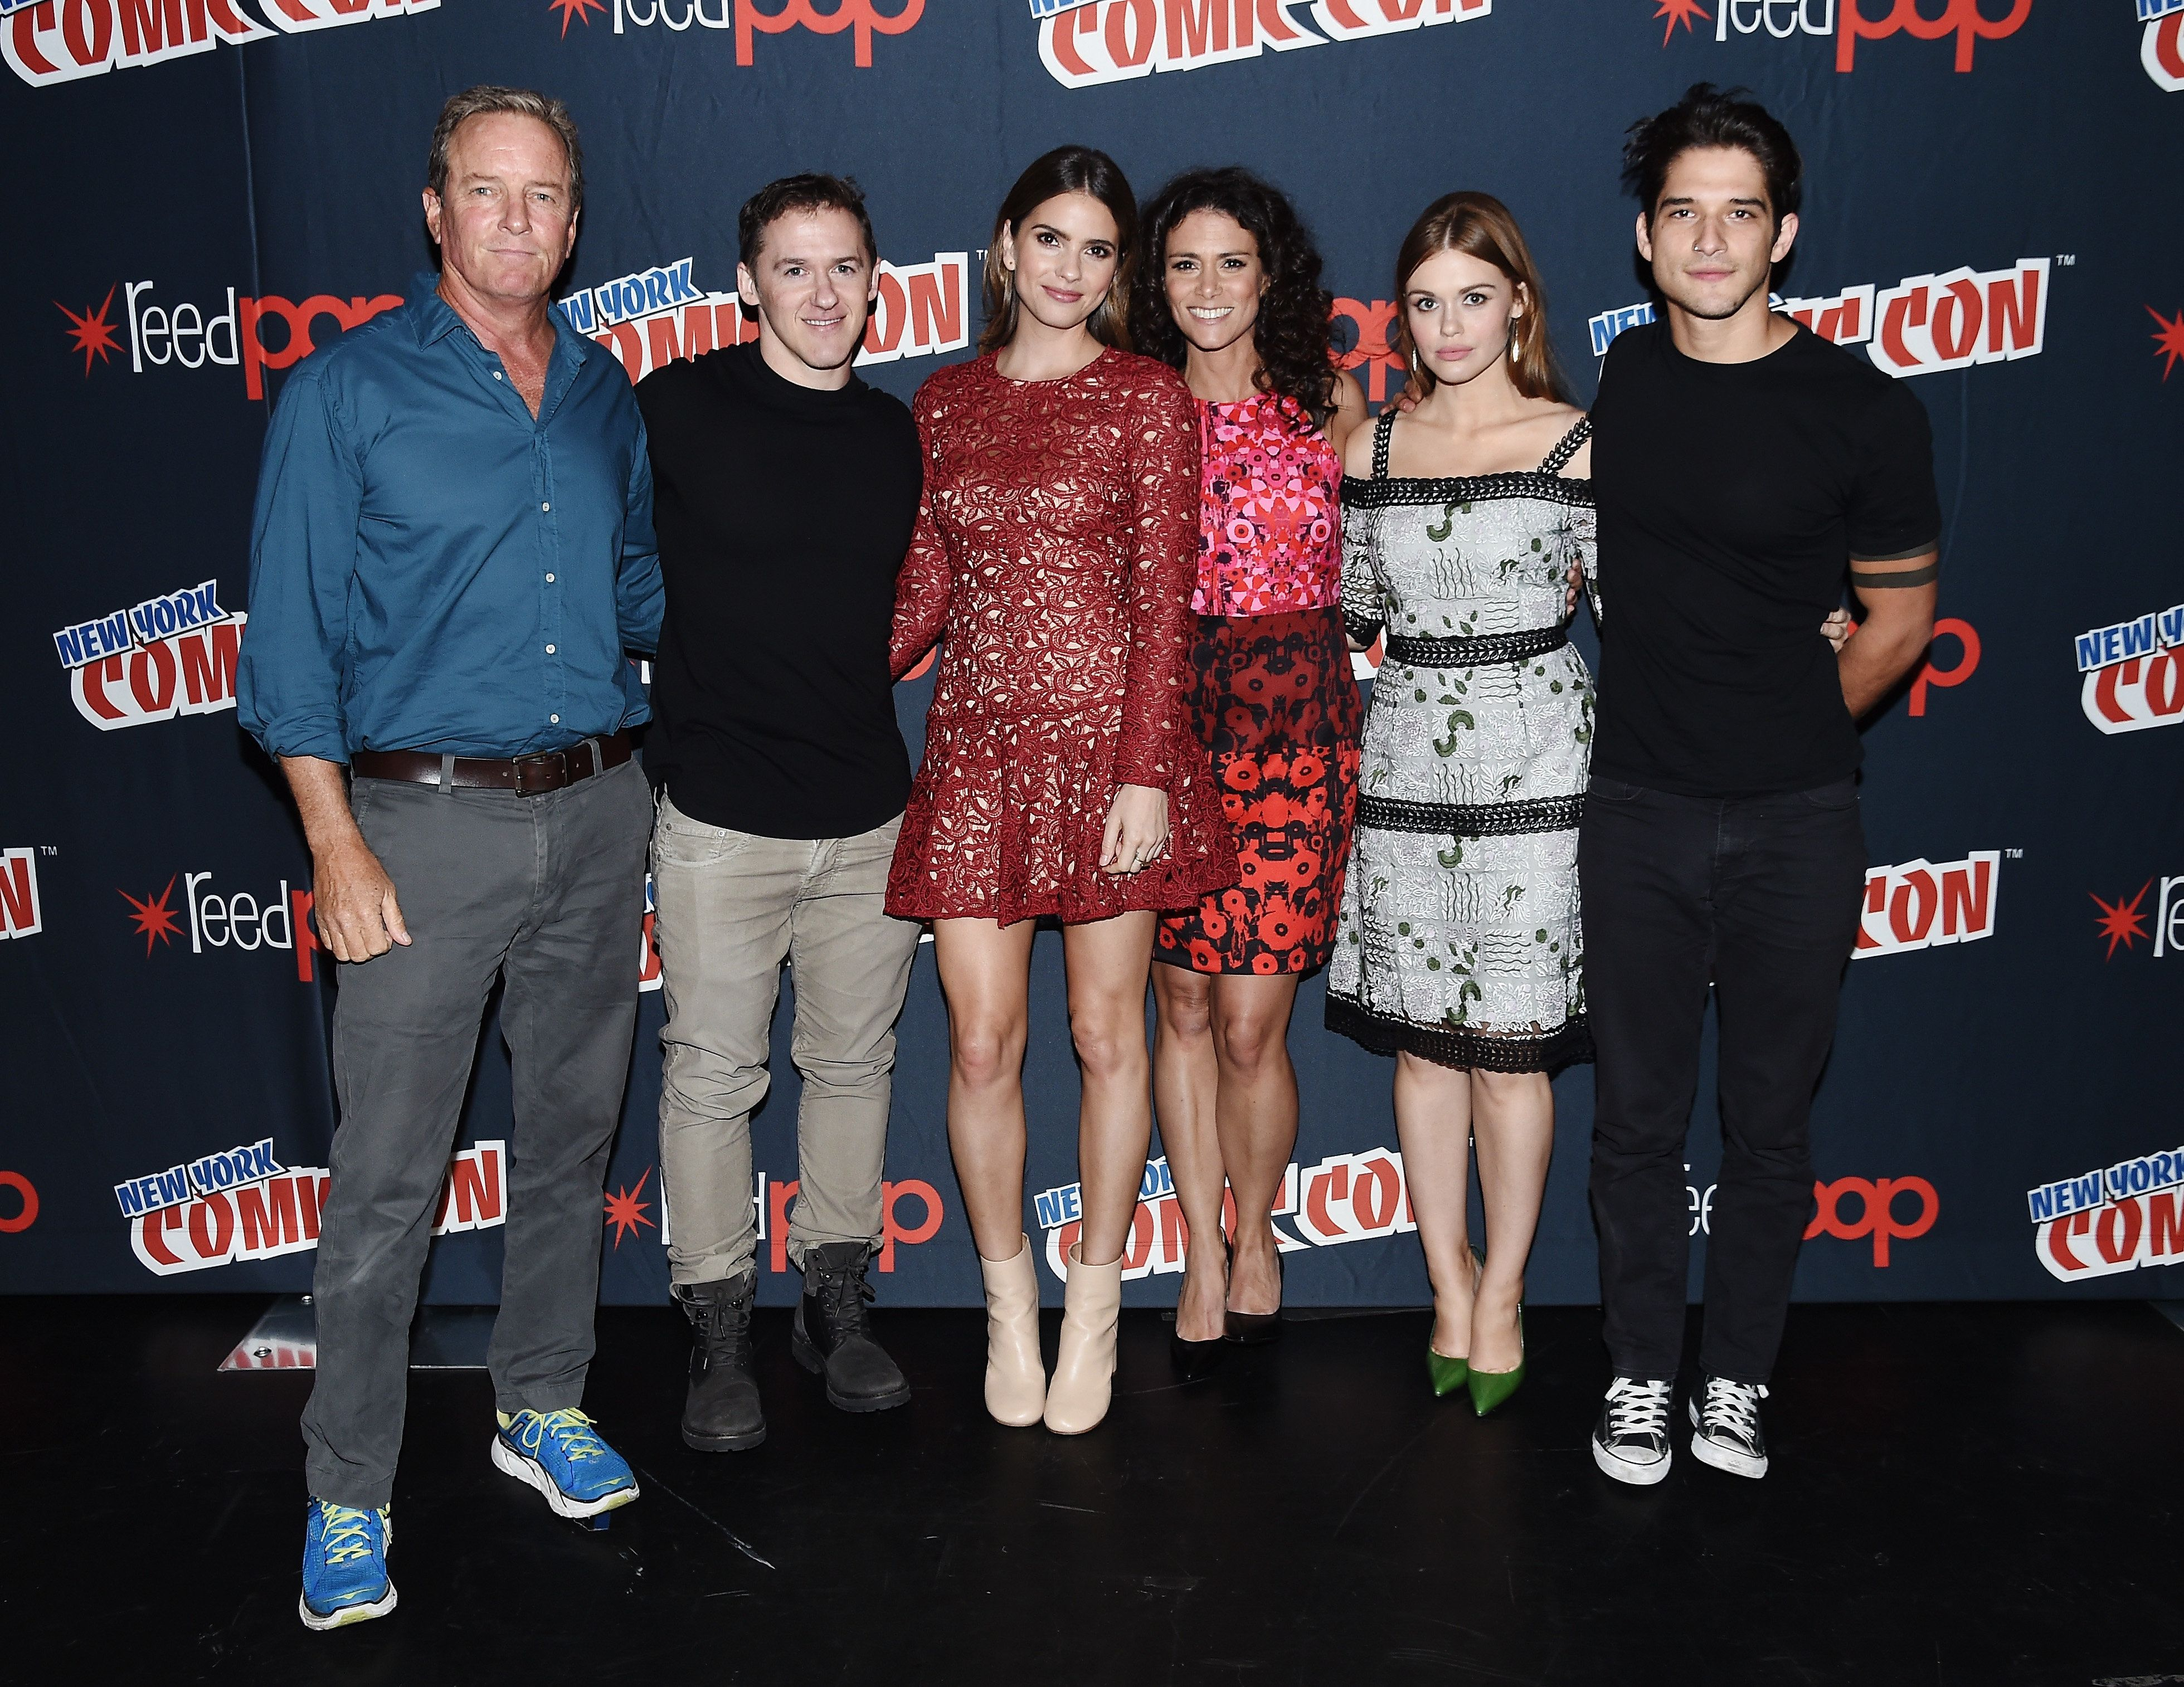 NEW YORK, NY - OCTOBER 08:  Linden Ashby, Jeff Davis, Shelley Hennig, Melissa Ponzio, Holland Roden and Tyler Posey  attend the 'Teen Wolf' Final Farewell during day 3 of 2016 New York Comic Con at Hammerstein Ballroom on October 8, 2016 in New York City.  (Photo by Nicholas Hunt/Getty Images for MTV)